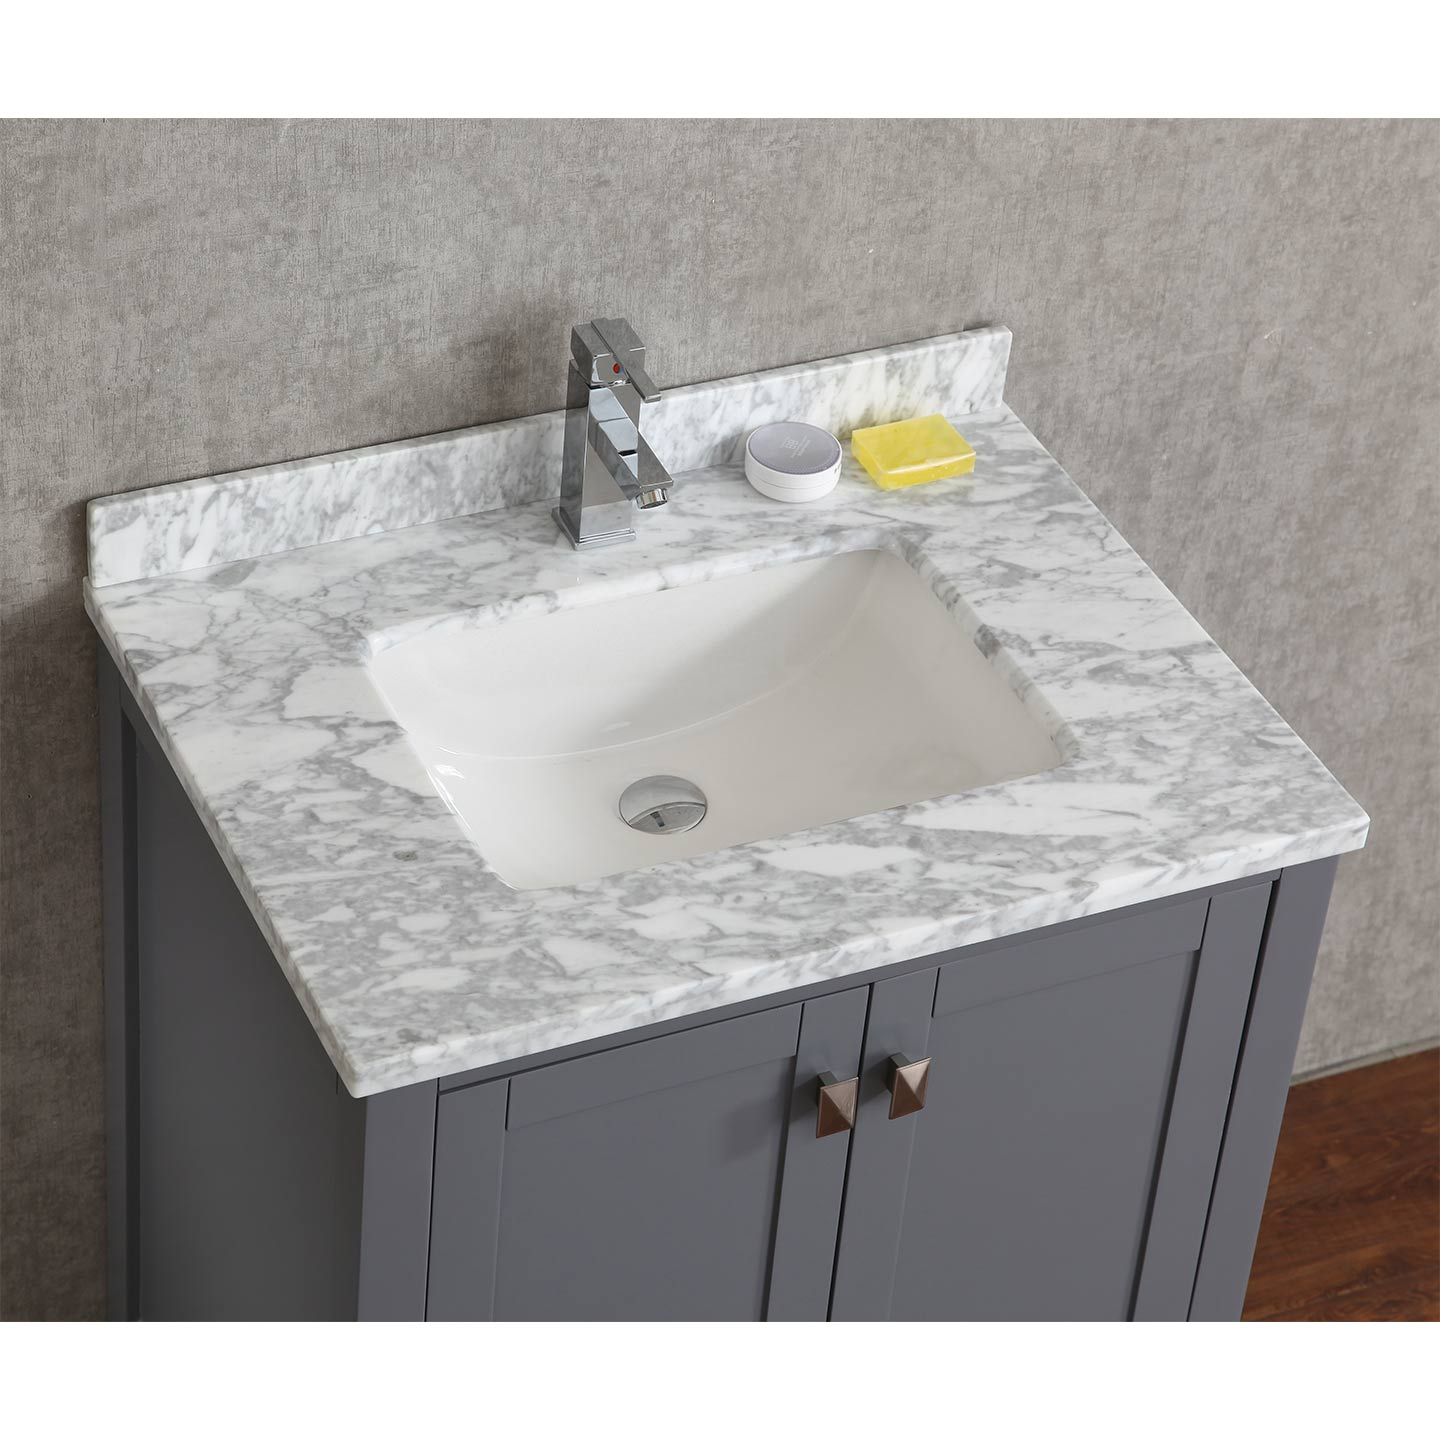 bathroom vanity grey. 30  Solid Wood Double Bathroom Vanity in Charcoal Grey HM 13001 WMSQ CG Buy Vincent Inch